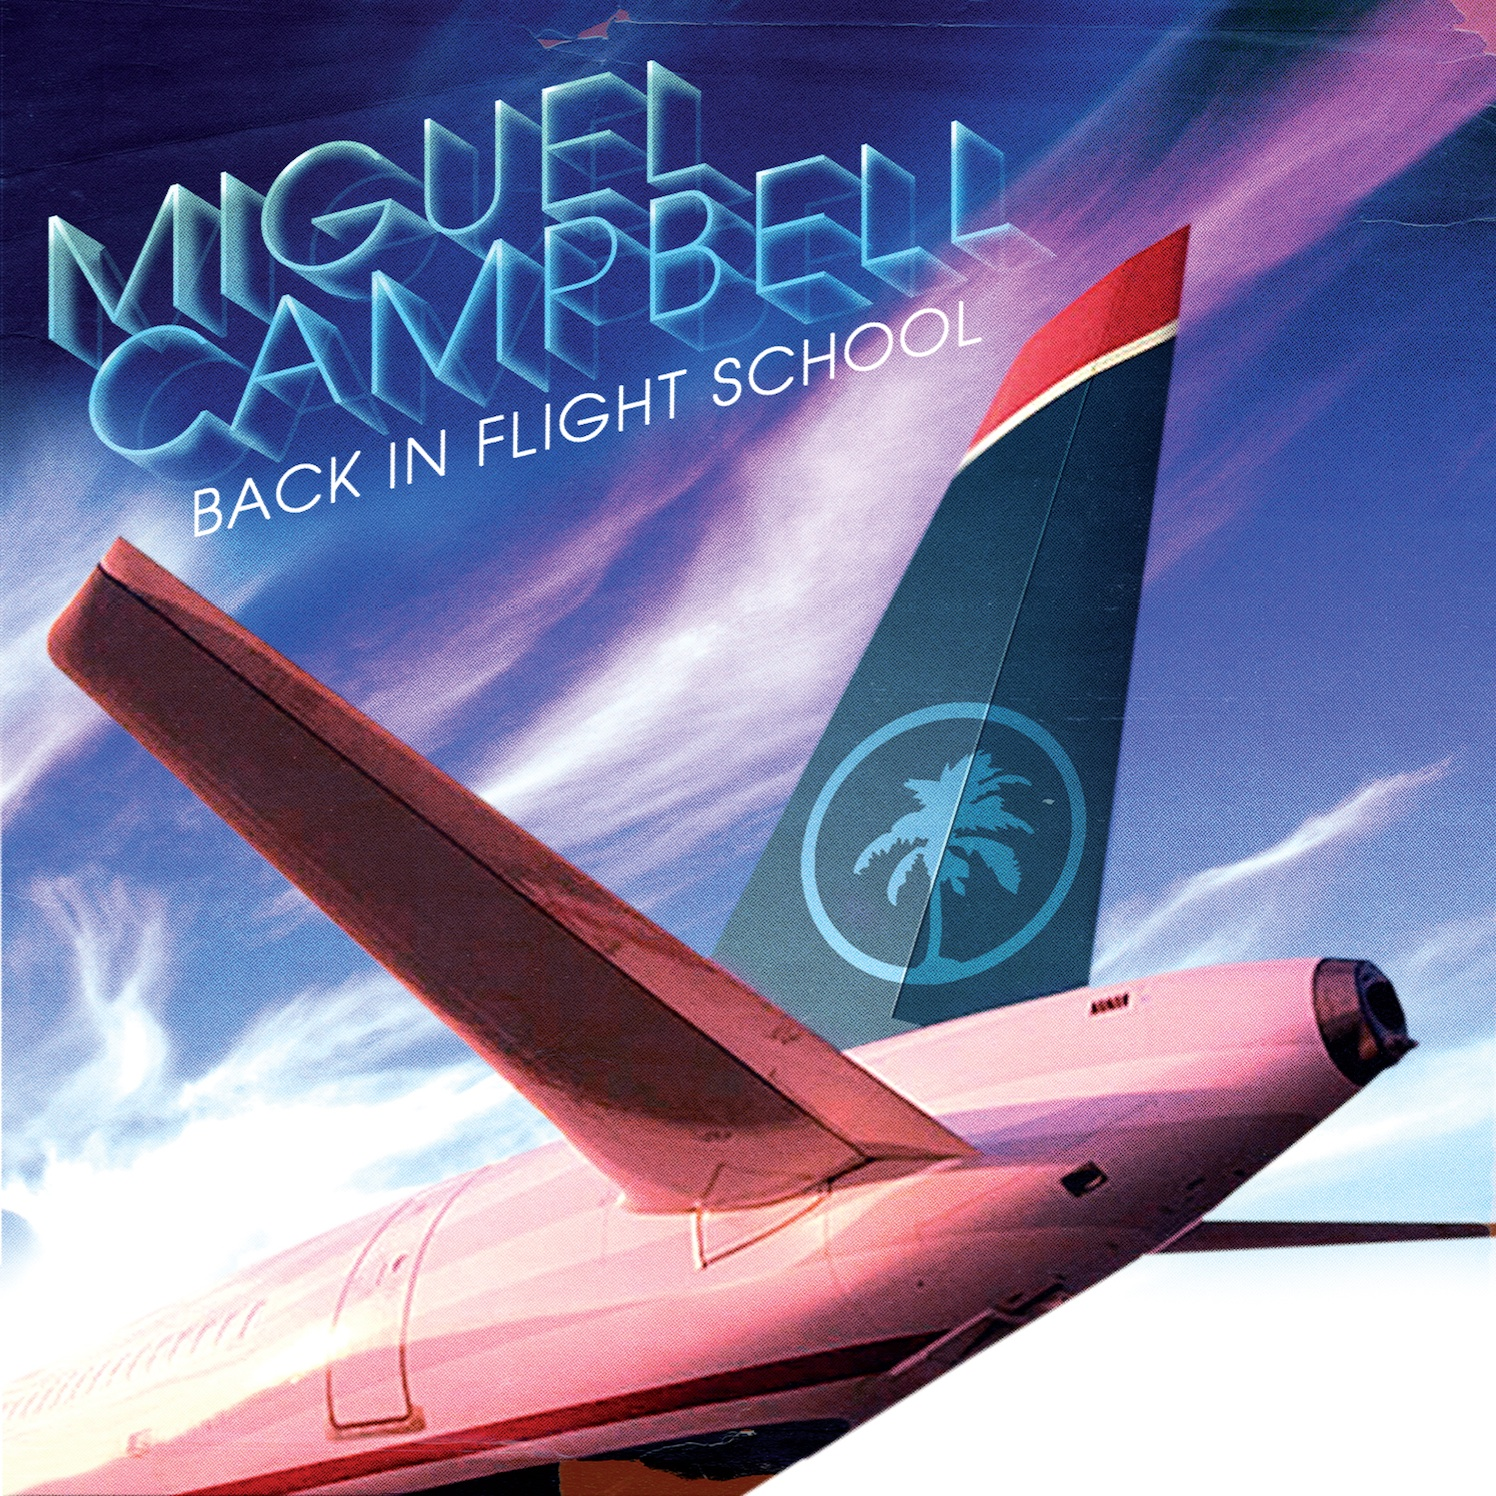 Miguel Campbell – Back in Flightschool (Hot Creations)